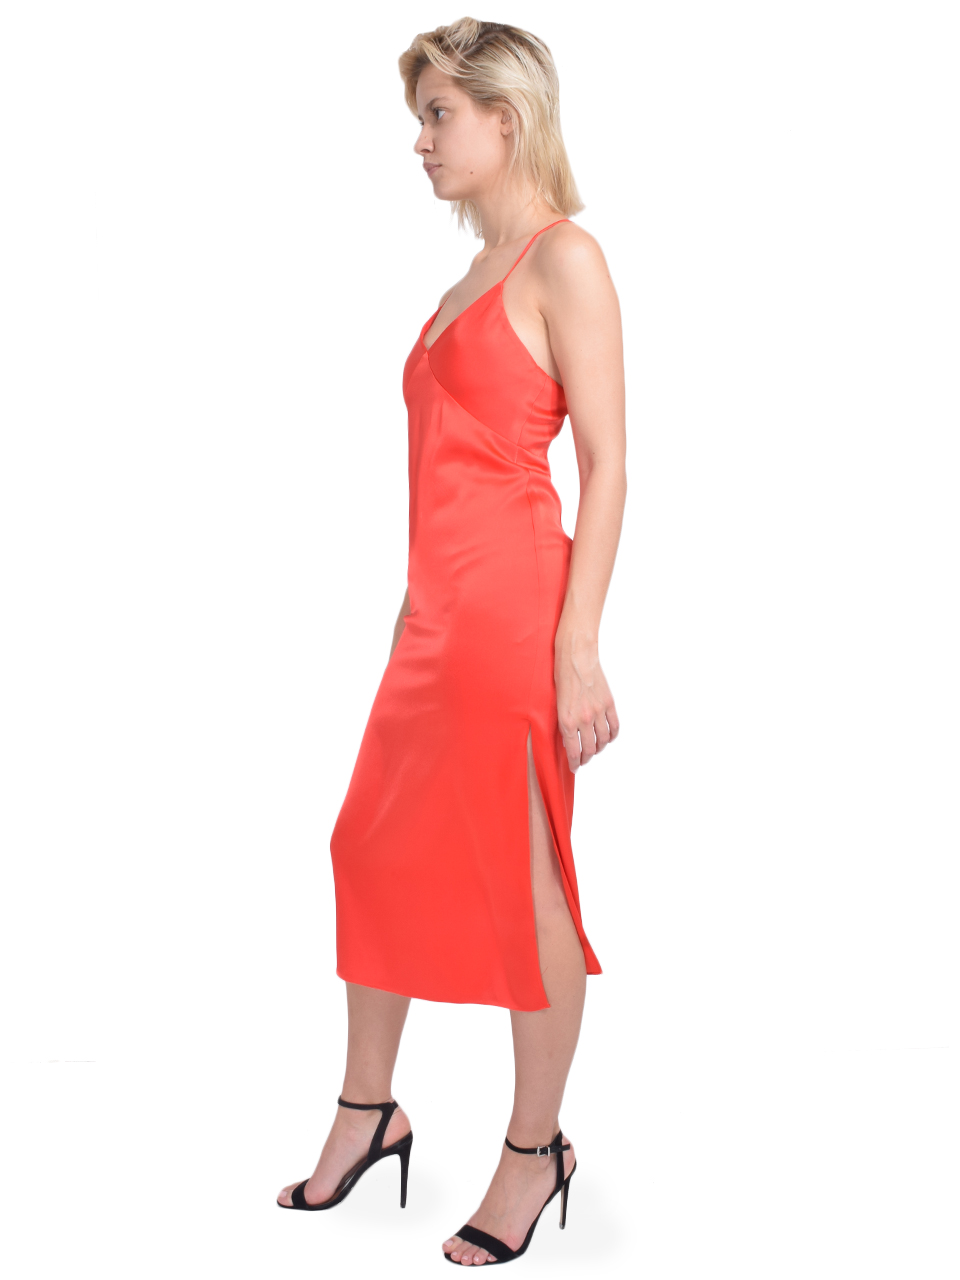 ALICE + OLIVIA Loraine Seamed Slip Midi Dress in Bright Poppy Side View